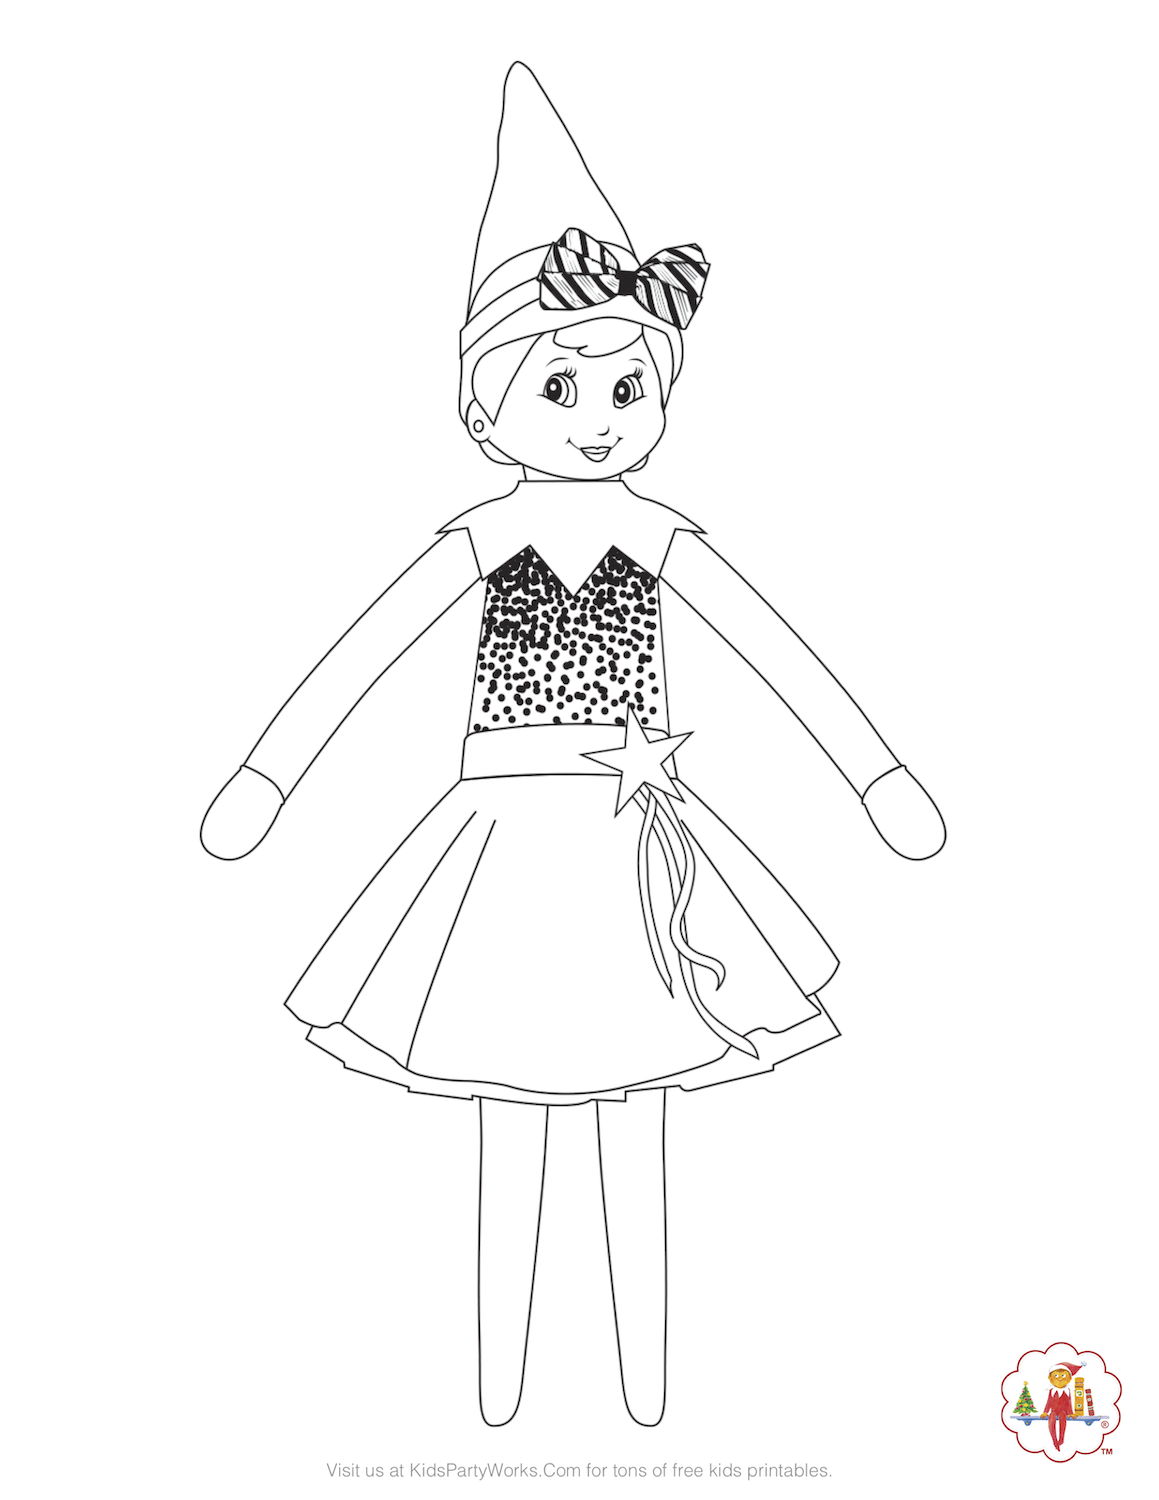 Girl Elf on the Shelf Coloring Page. She's ready for the